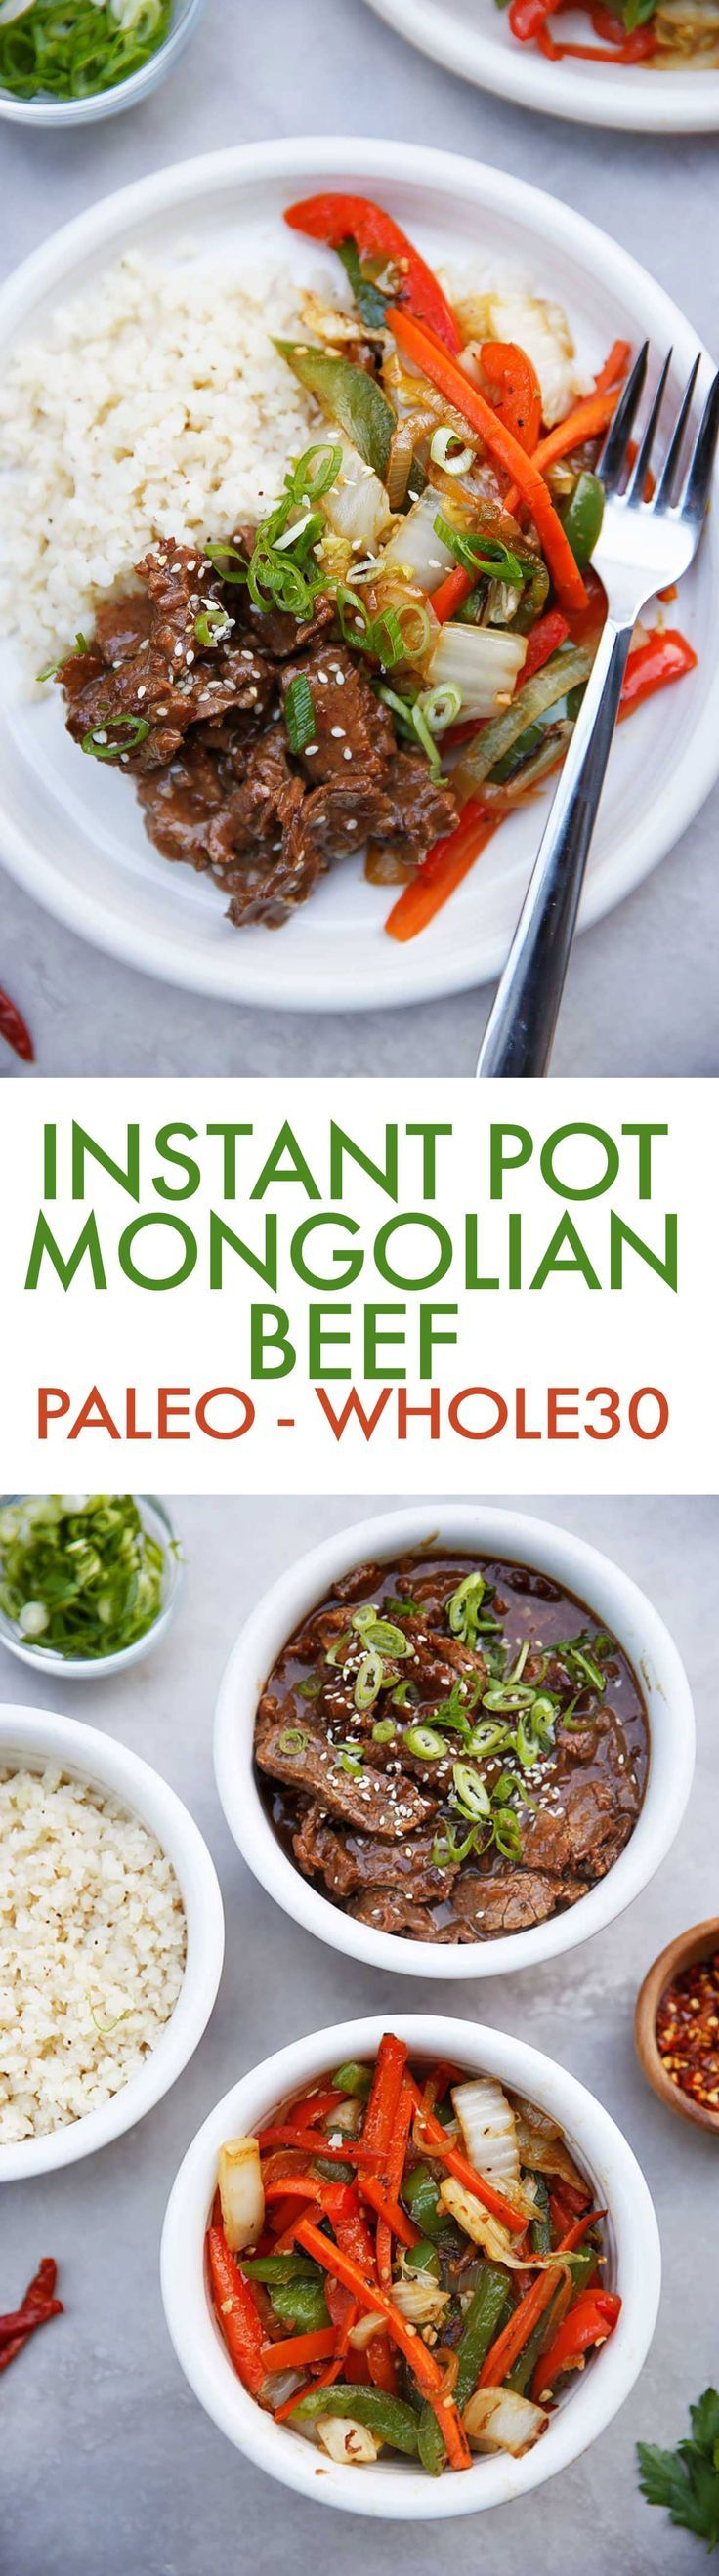 This Instant PotPaleo Mongolian Beef is a dinner must-make! This P.F. Chang's copycat recipe is made gluten-free, soy-free, paleo-friendly, low carb, and whole30-compliant!